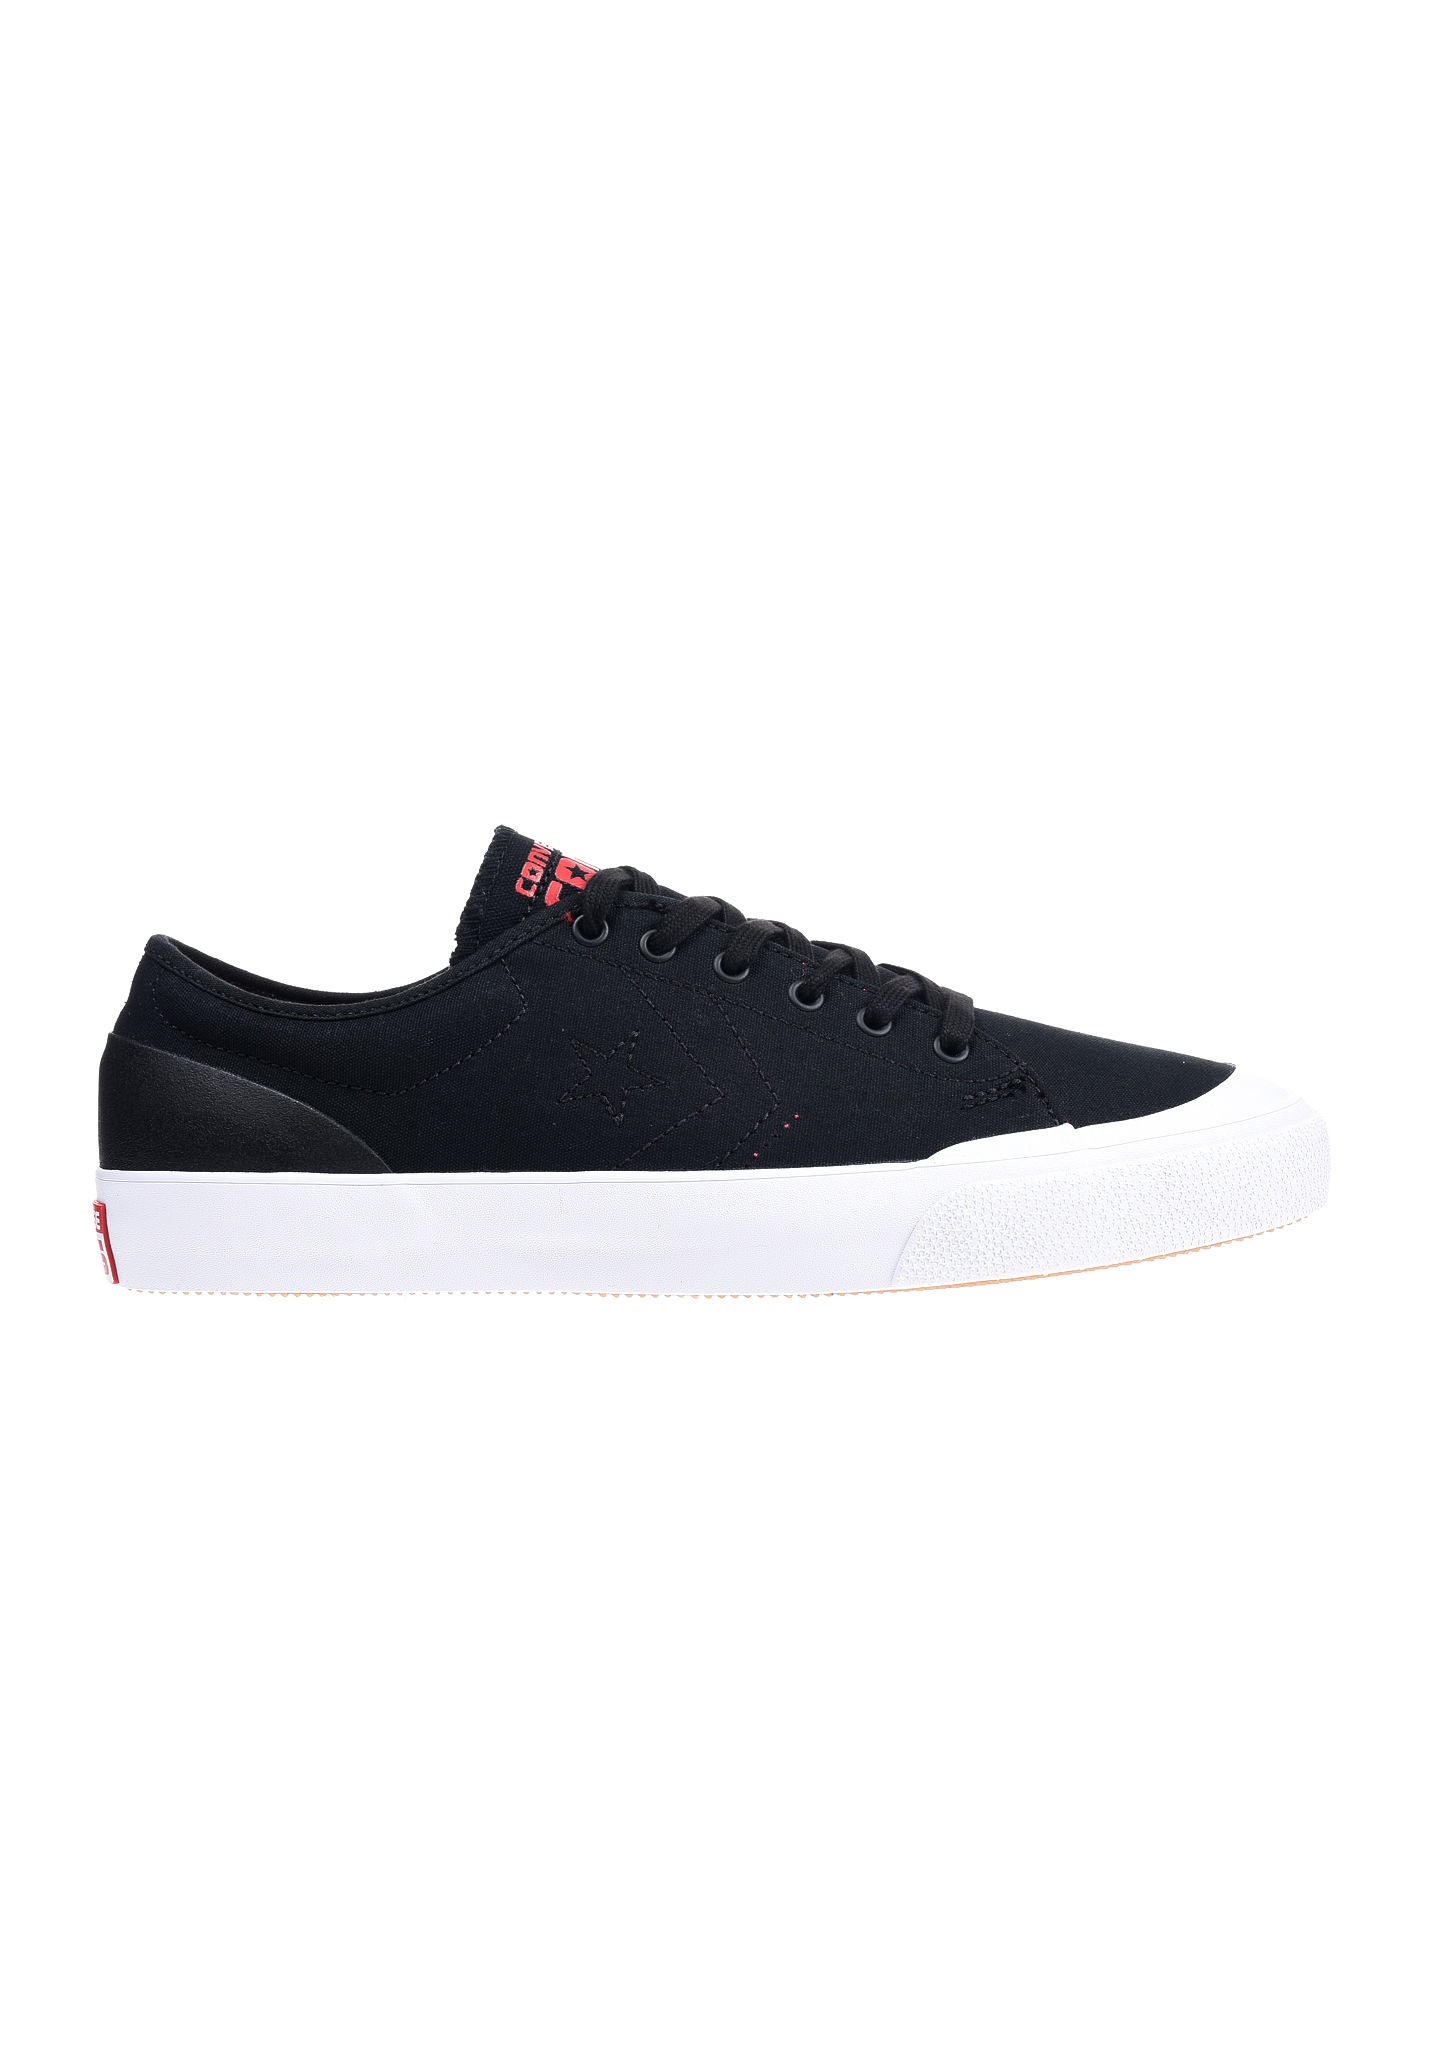 78339a1ee1b4 Converse Cons Summer Ox - Sneakers for Men - Black - Planet Sports